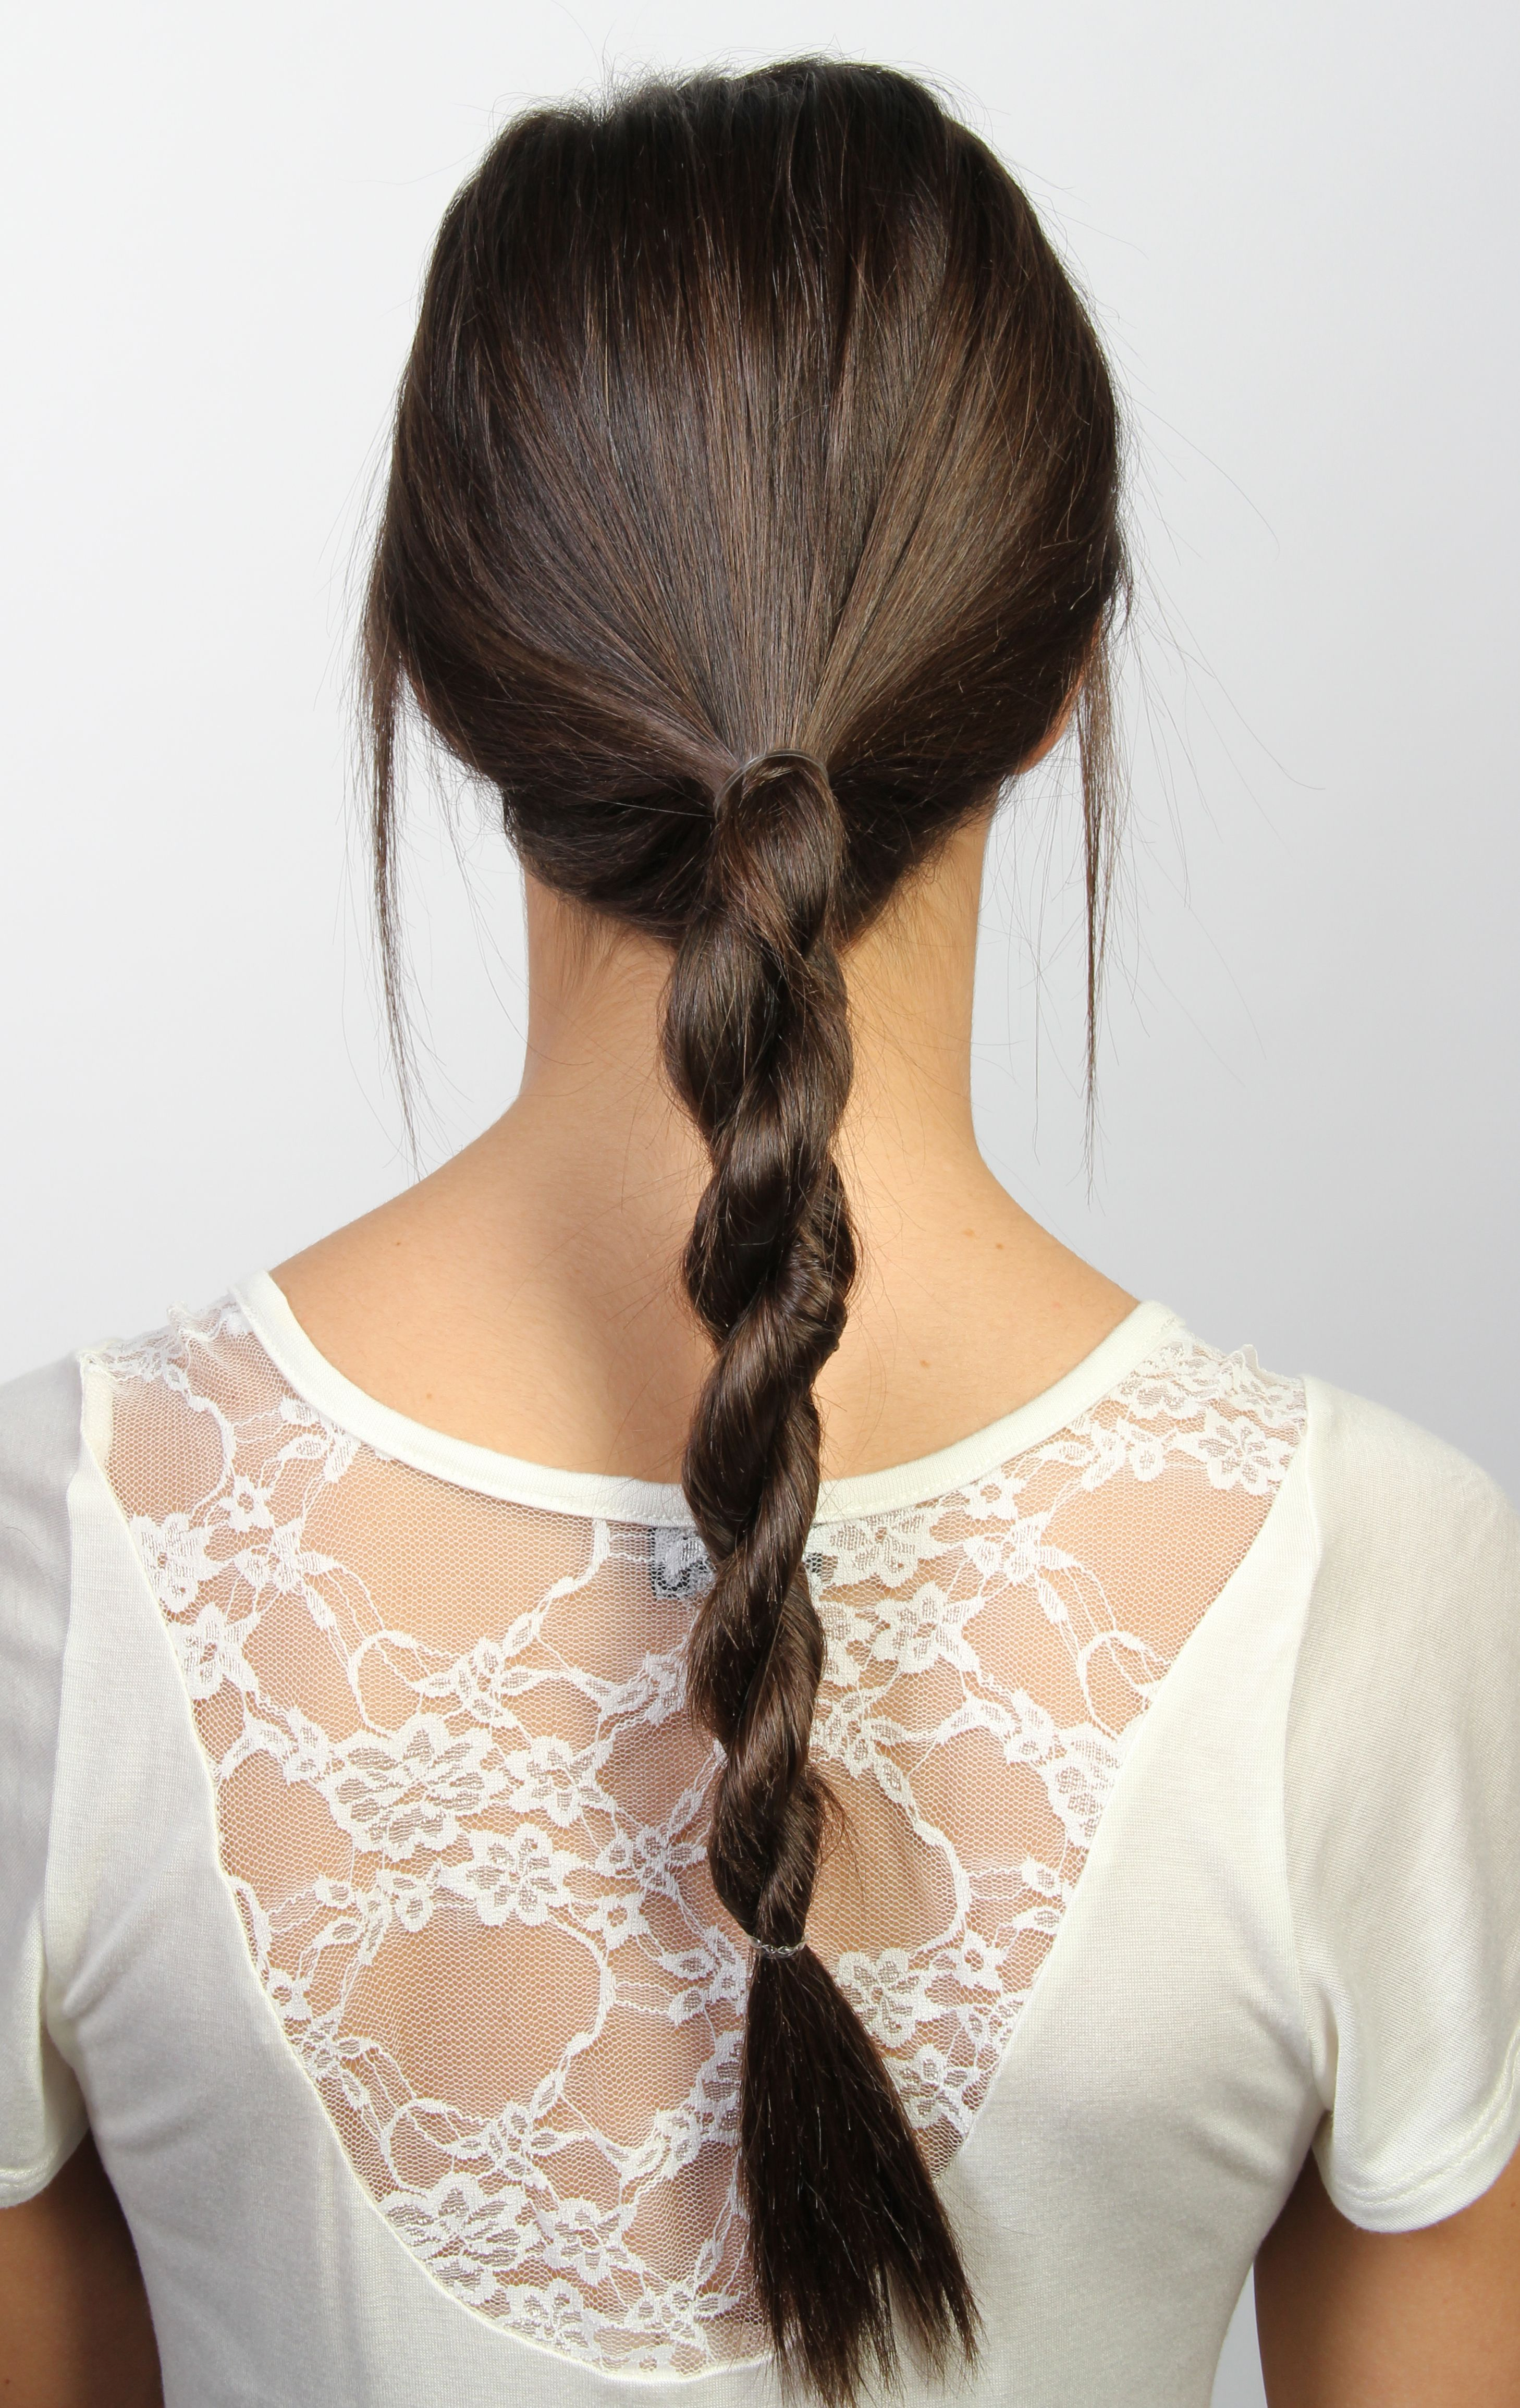 Rope braid - sadly I have never been able to get my hair to do this필리핀바카라 ASIANKASINO.COM필리핀바카라 필리핀바카라 필리핀바카라 필리핀바카라 필리핀바카라 필리핀바카라 gahi7.com 필리핀바카라 필리핀바카라 필리핀바카라 필리핀바카라 필리핀바카라 gahi7.com